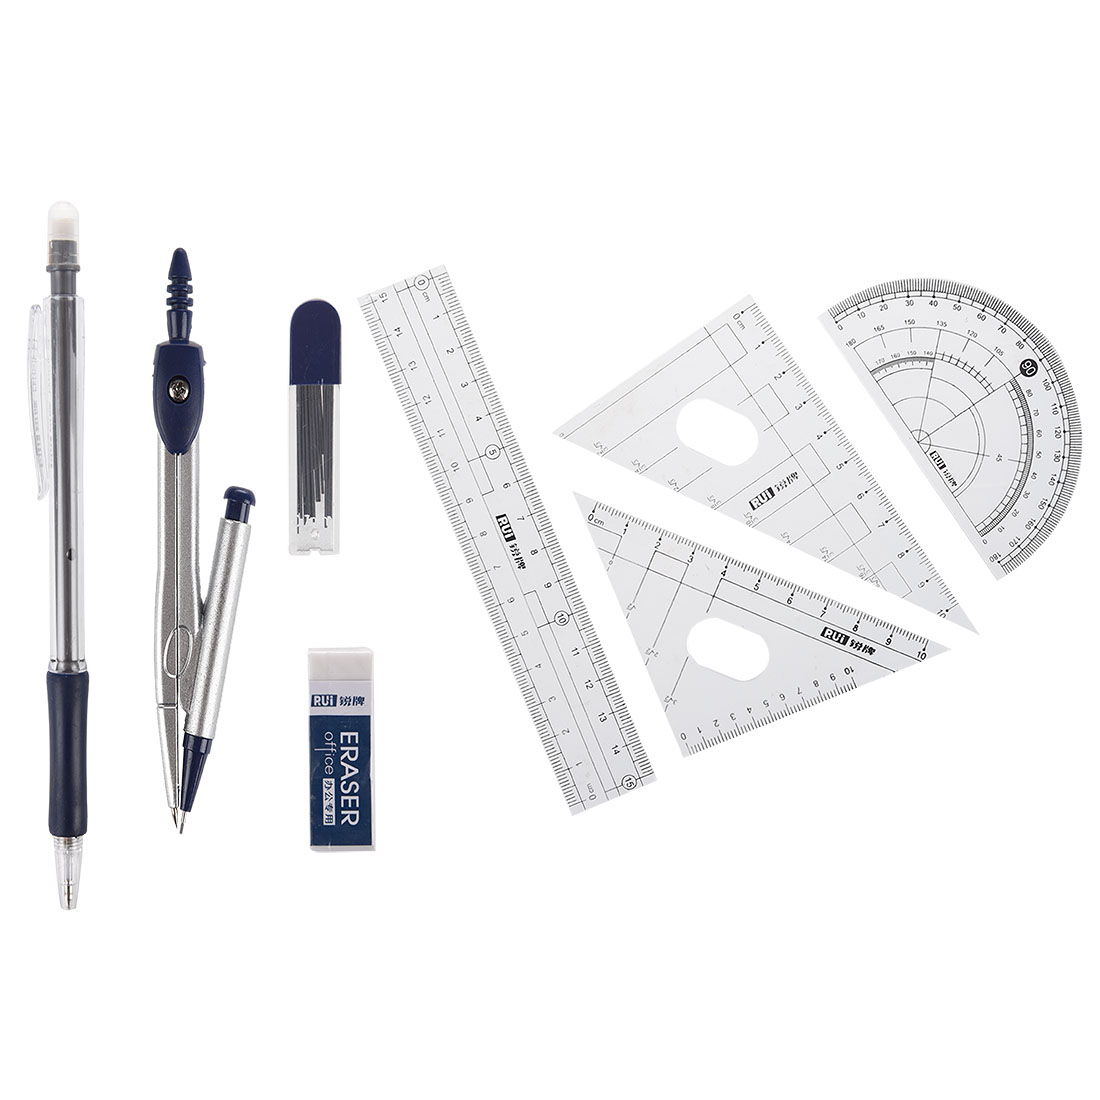 10pack (8 in 1 Protractor Compass 15cm Straight Ruler Rulers Set w Case compass set for student with divider set squares ruler protractor total 10 pieces included box drawing math geometry set